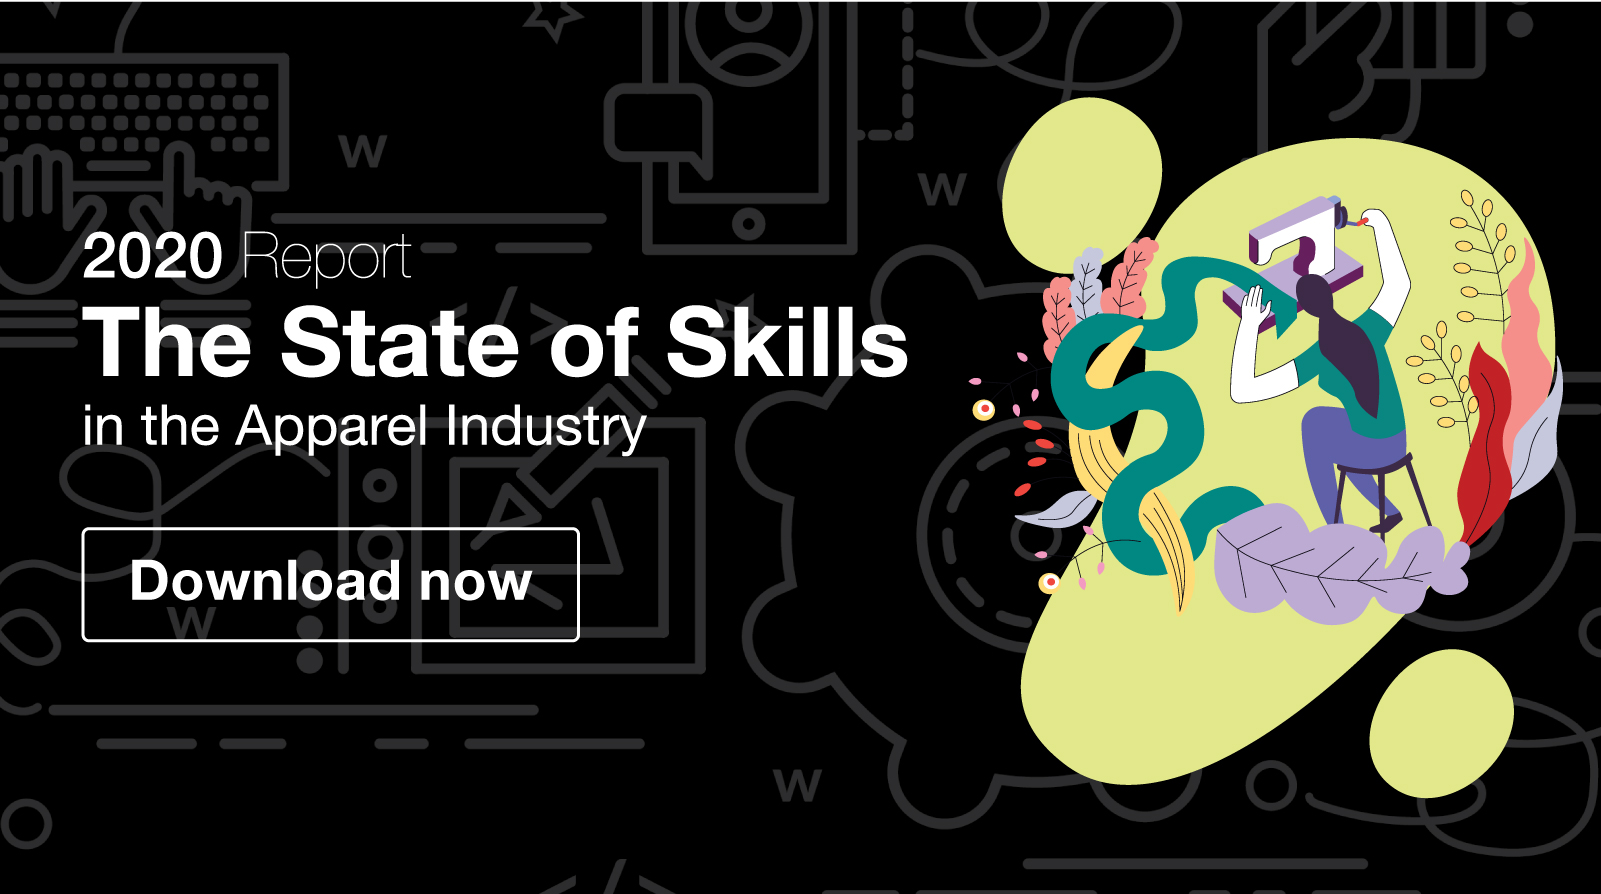 MOTIF Releases The State of Skills in the Apparel Industry 2020 Report